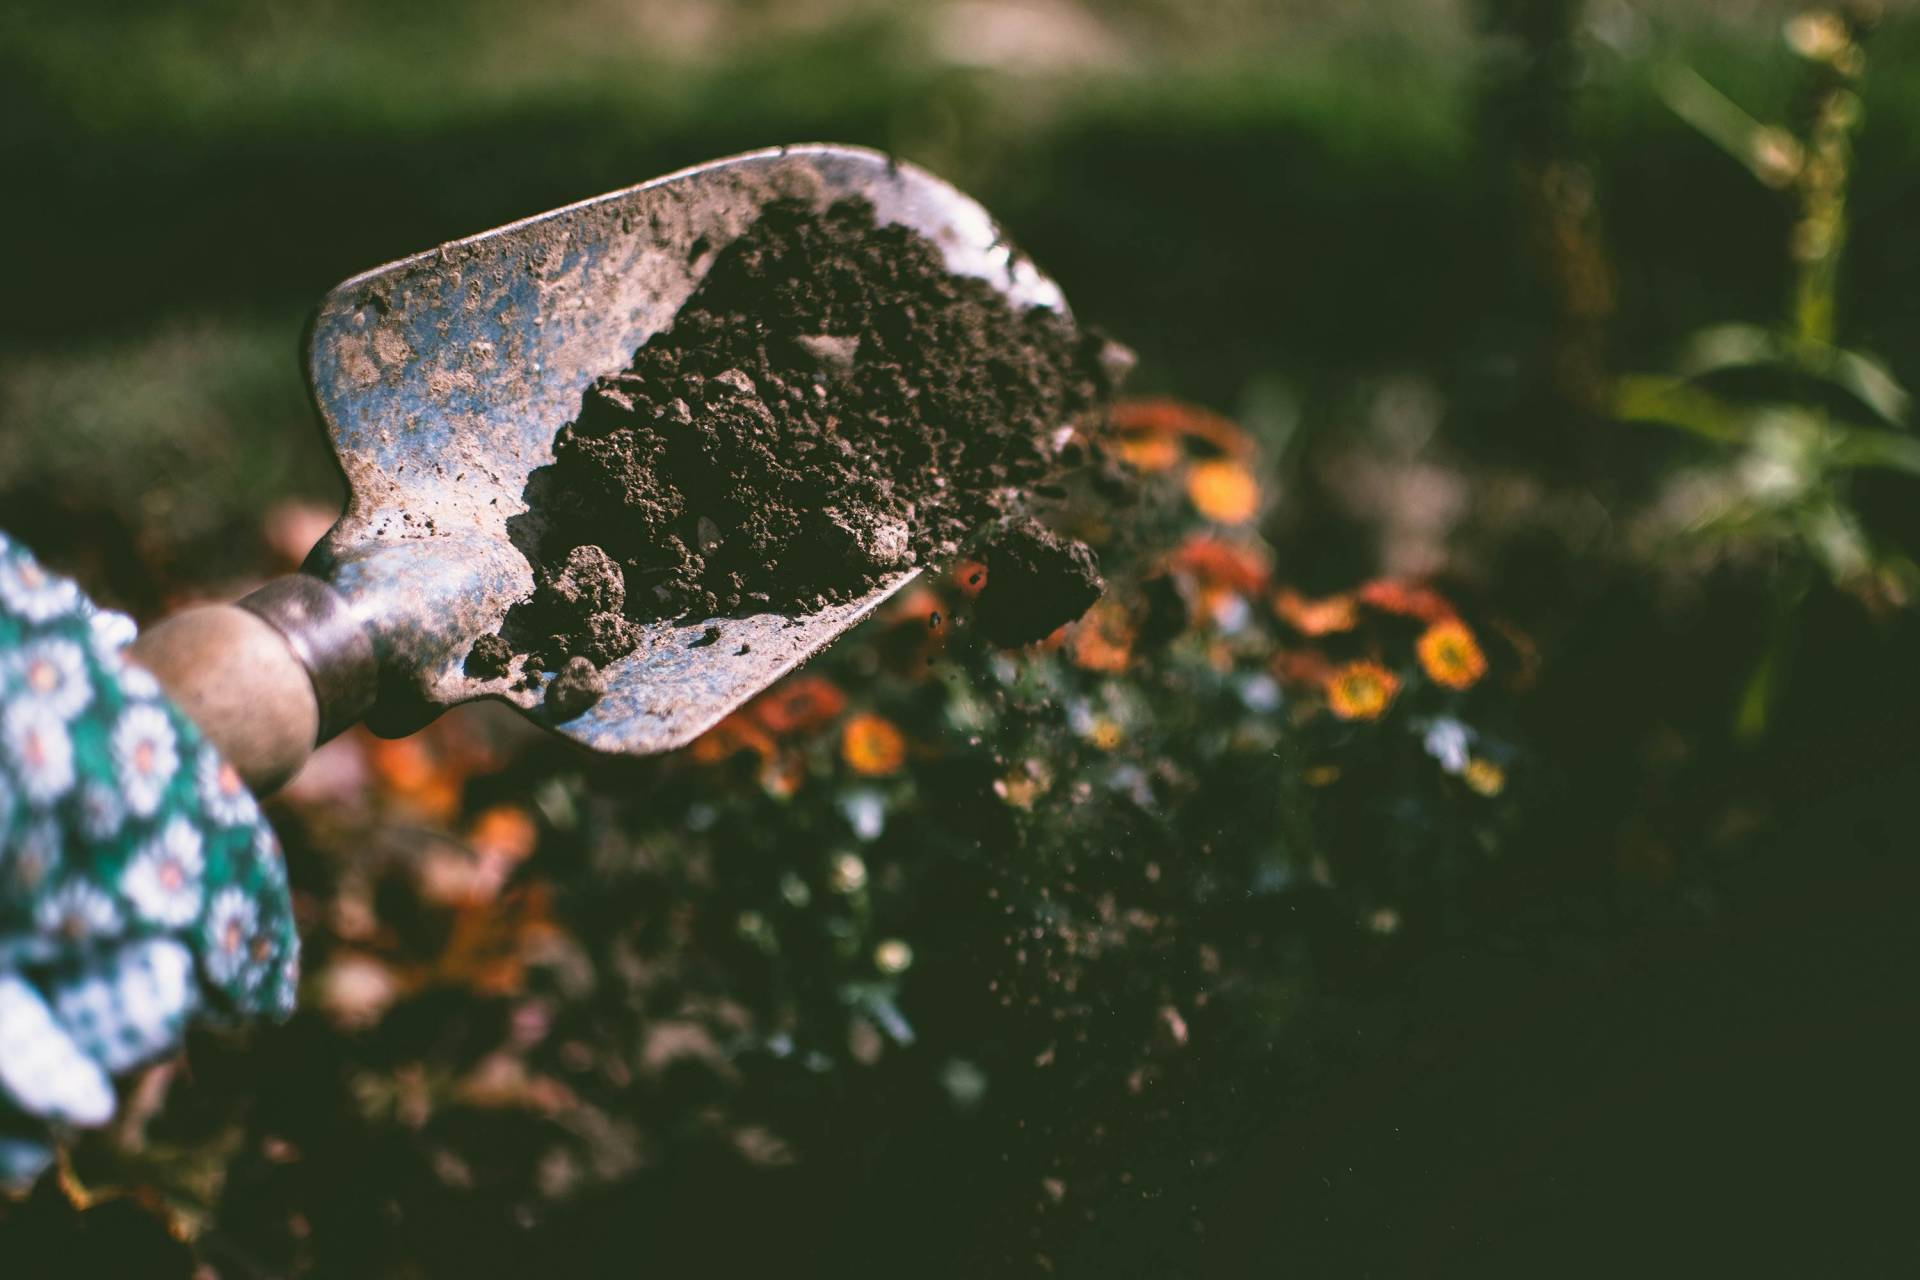 A spade with dirt on it